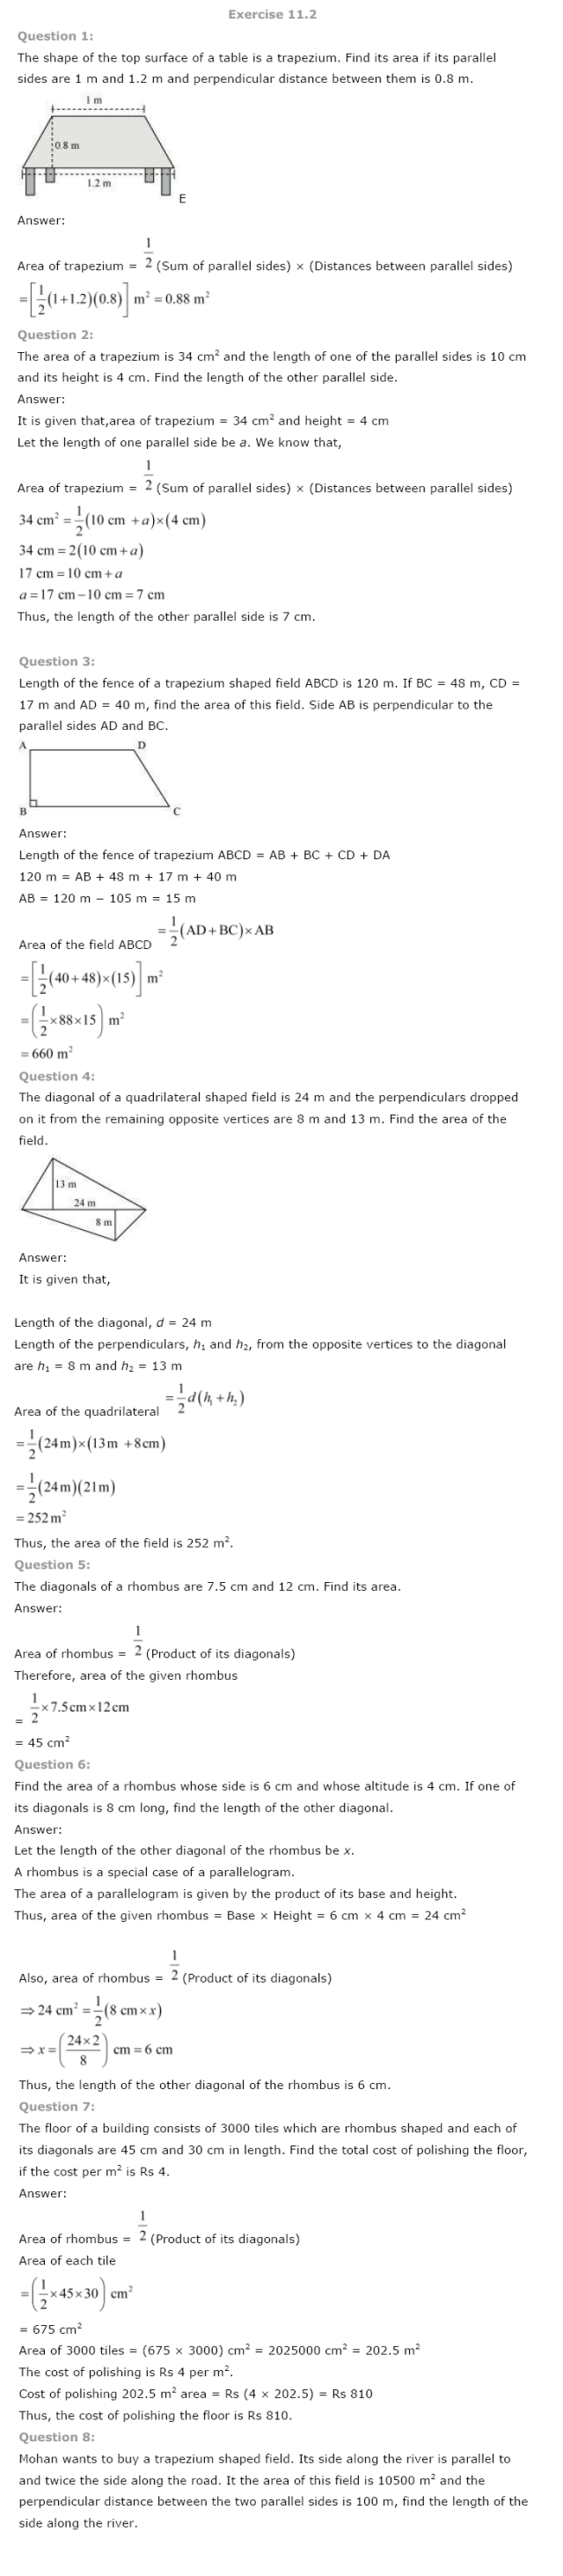 Class 8 NCERT Maths Solutions chapter 11 Mensuration 2